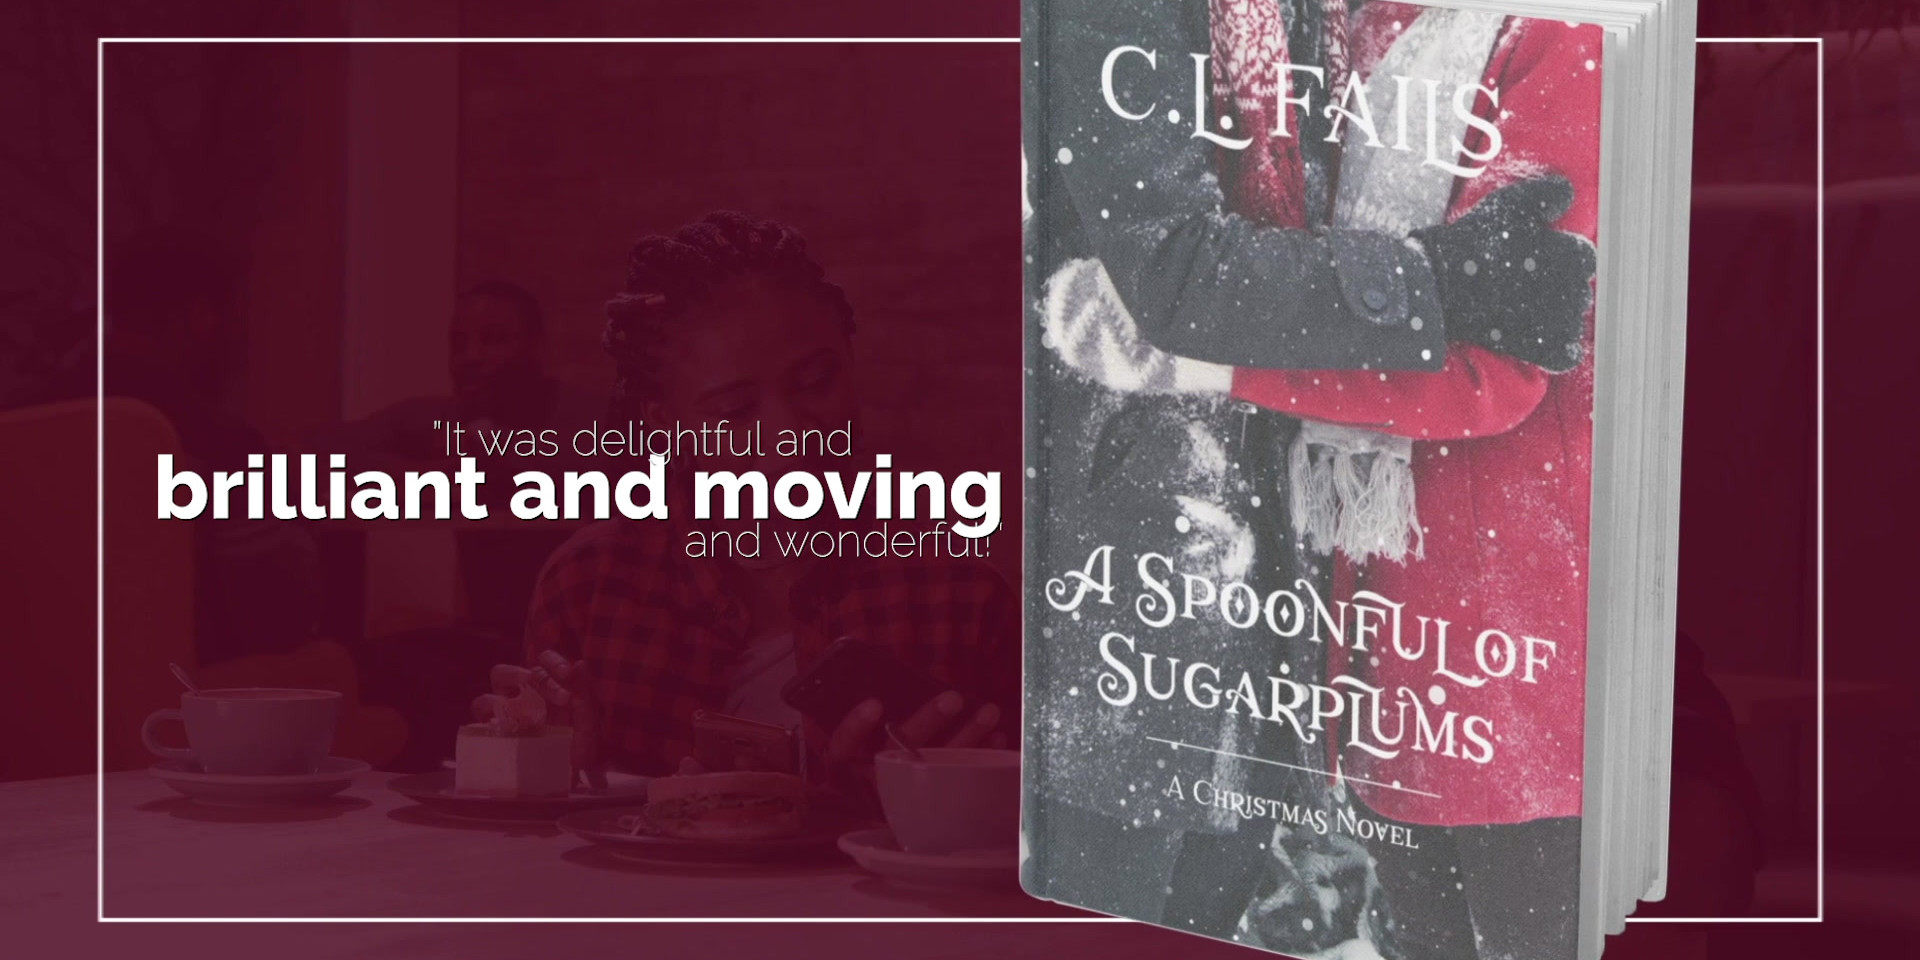 A Spoonful of Sugarplums Trailer - Small